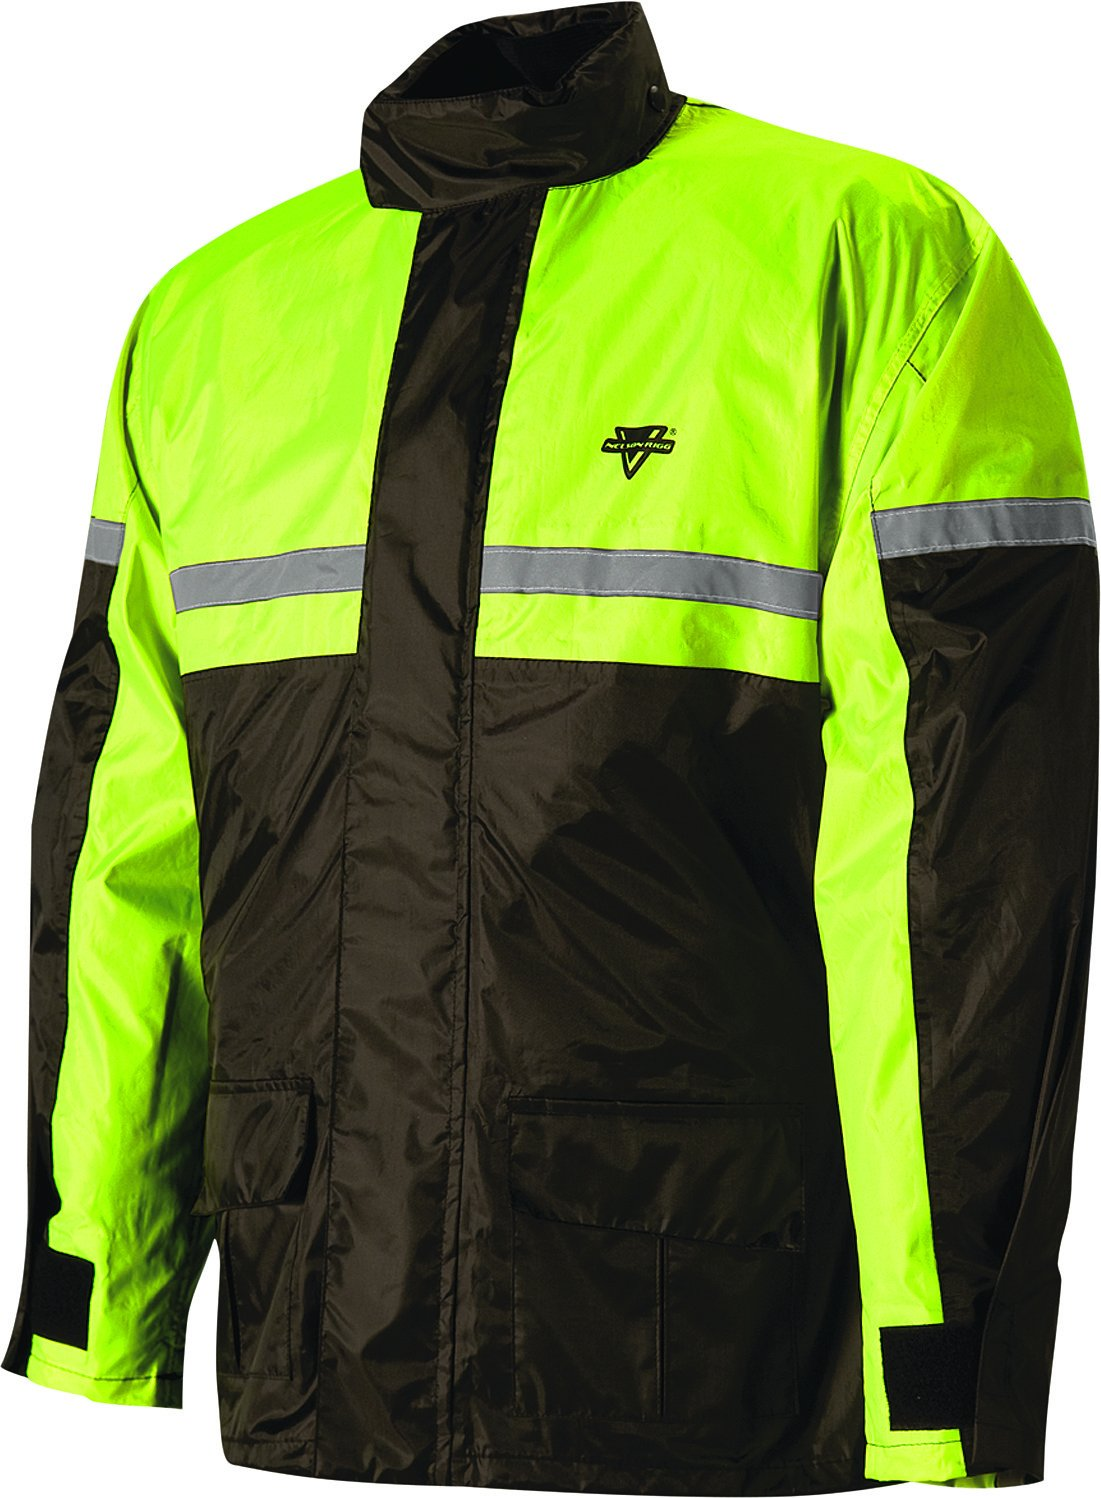 Nelson-Rigg SSR6000HVY05-XX Stormrider Unisex Rain Suit (Yellow, XX-Large) (High Visibility)